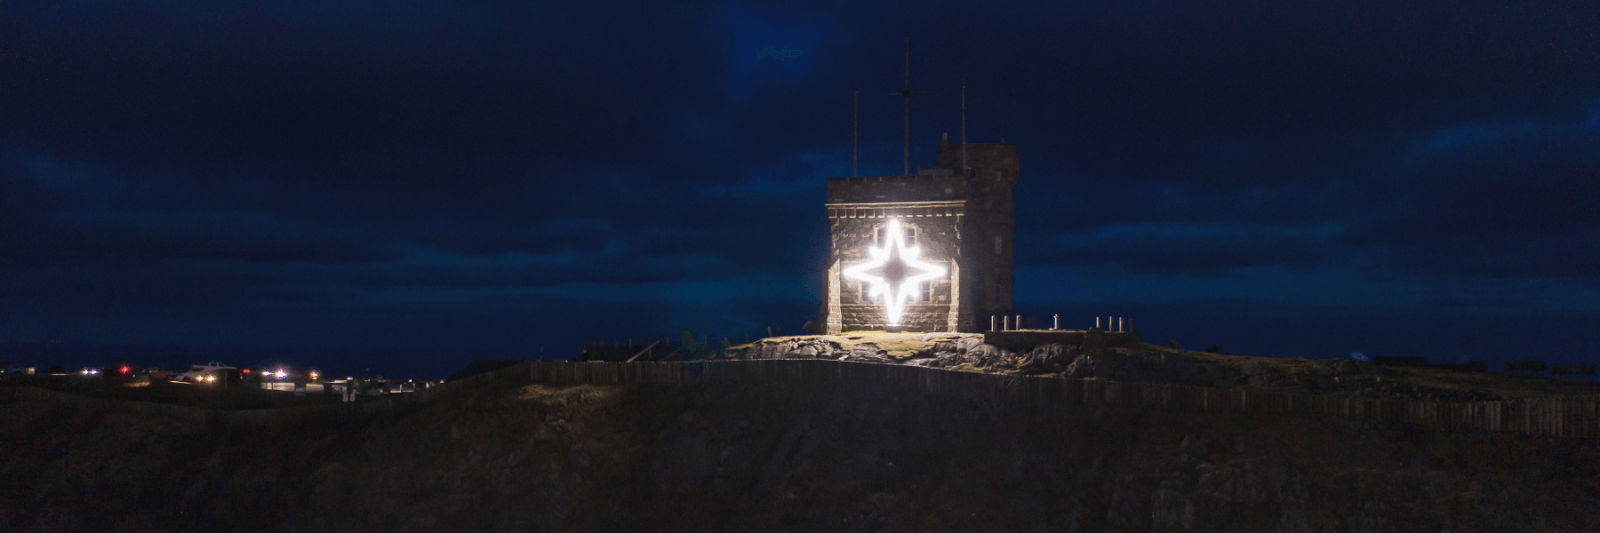 The Signal Hill Star: A Holiday Tradition - image